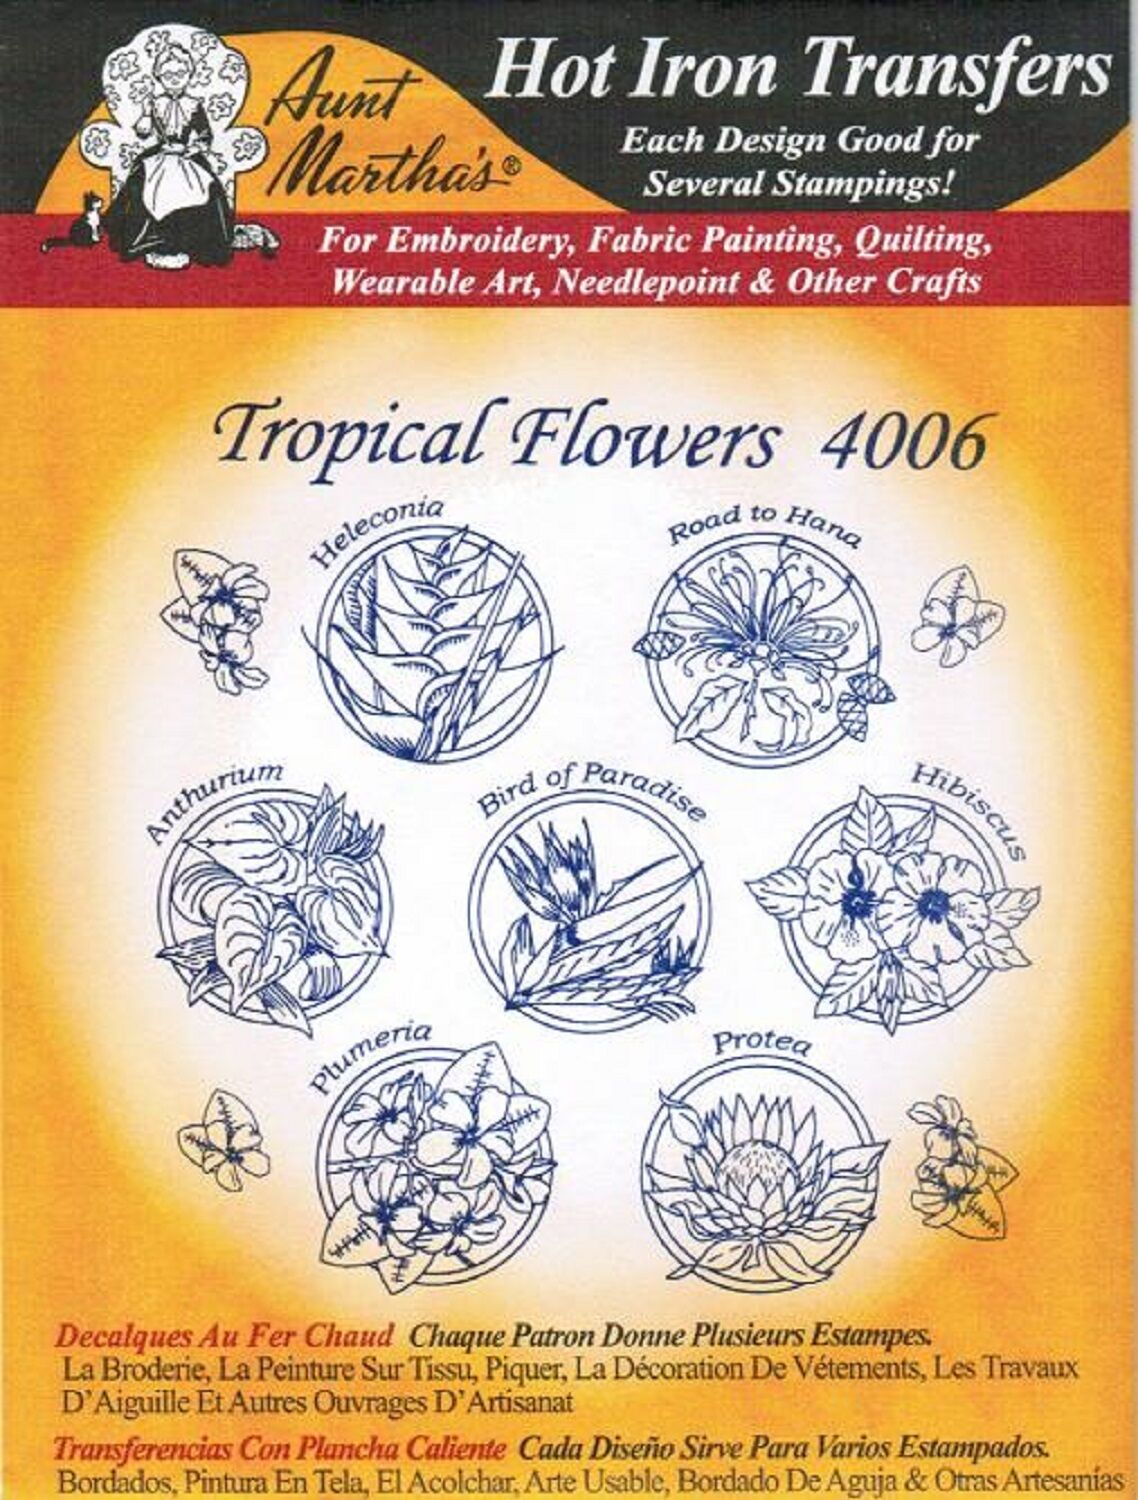 Tropical flowers aunt martha s hot iron embroidery